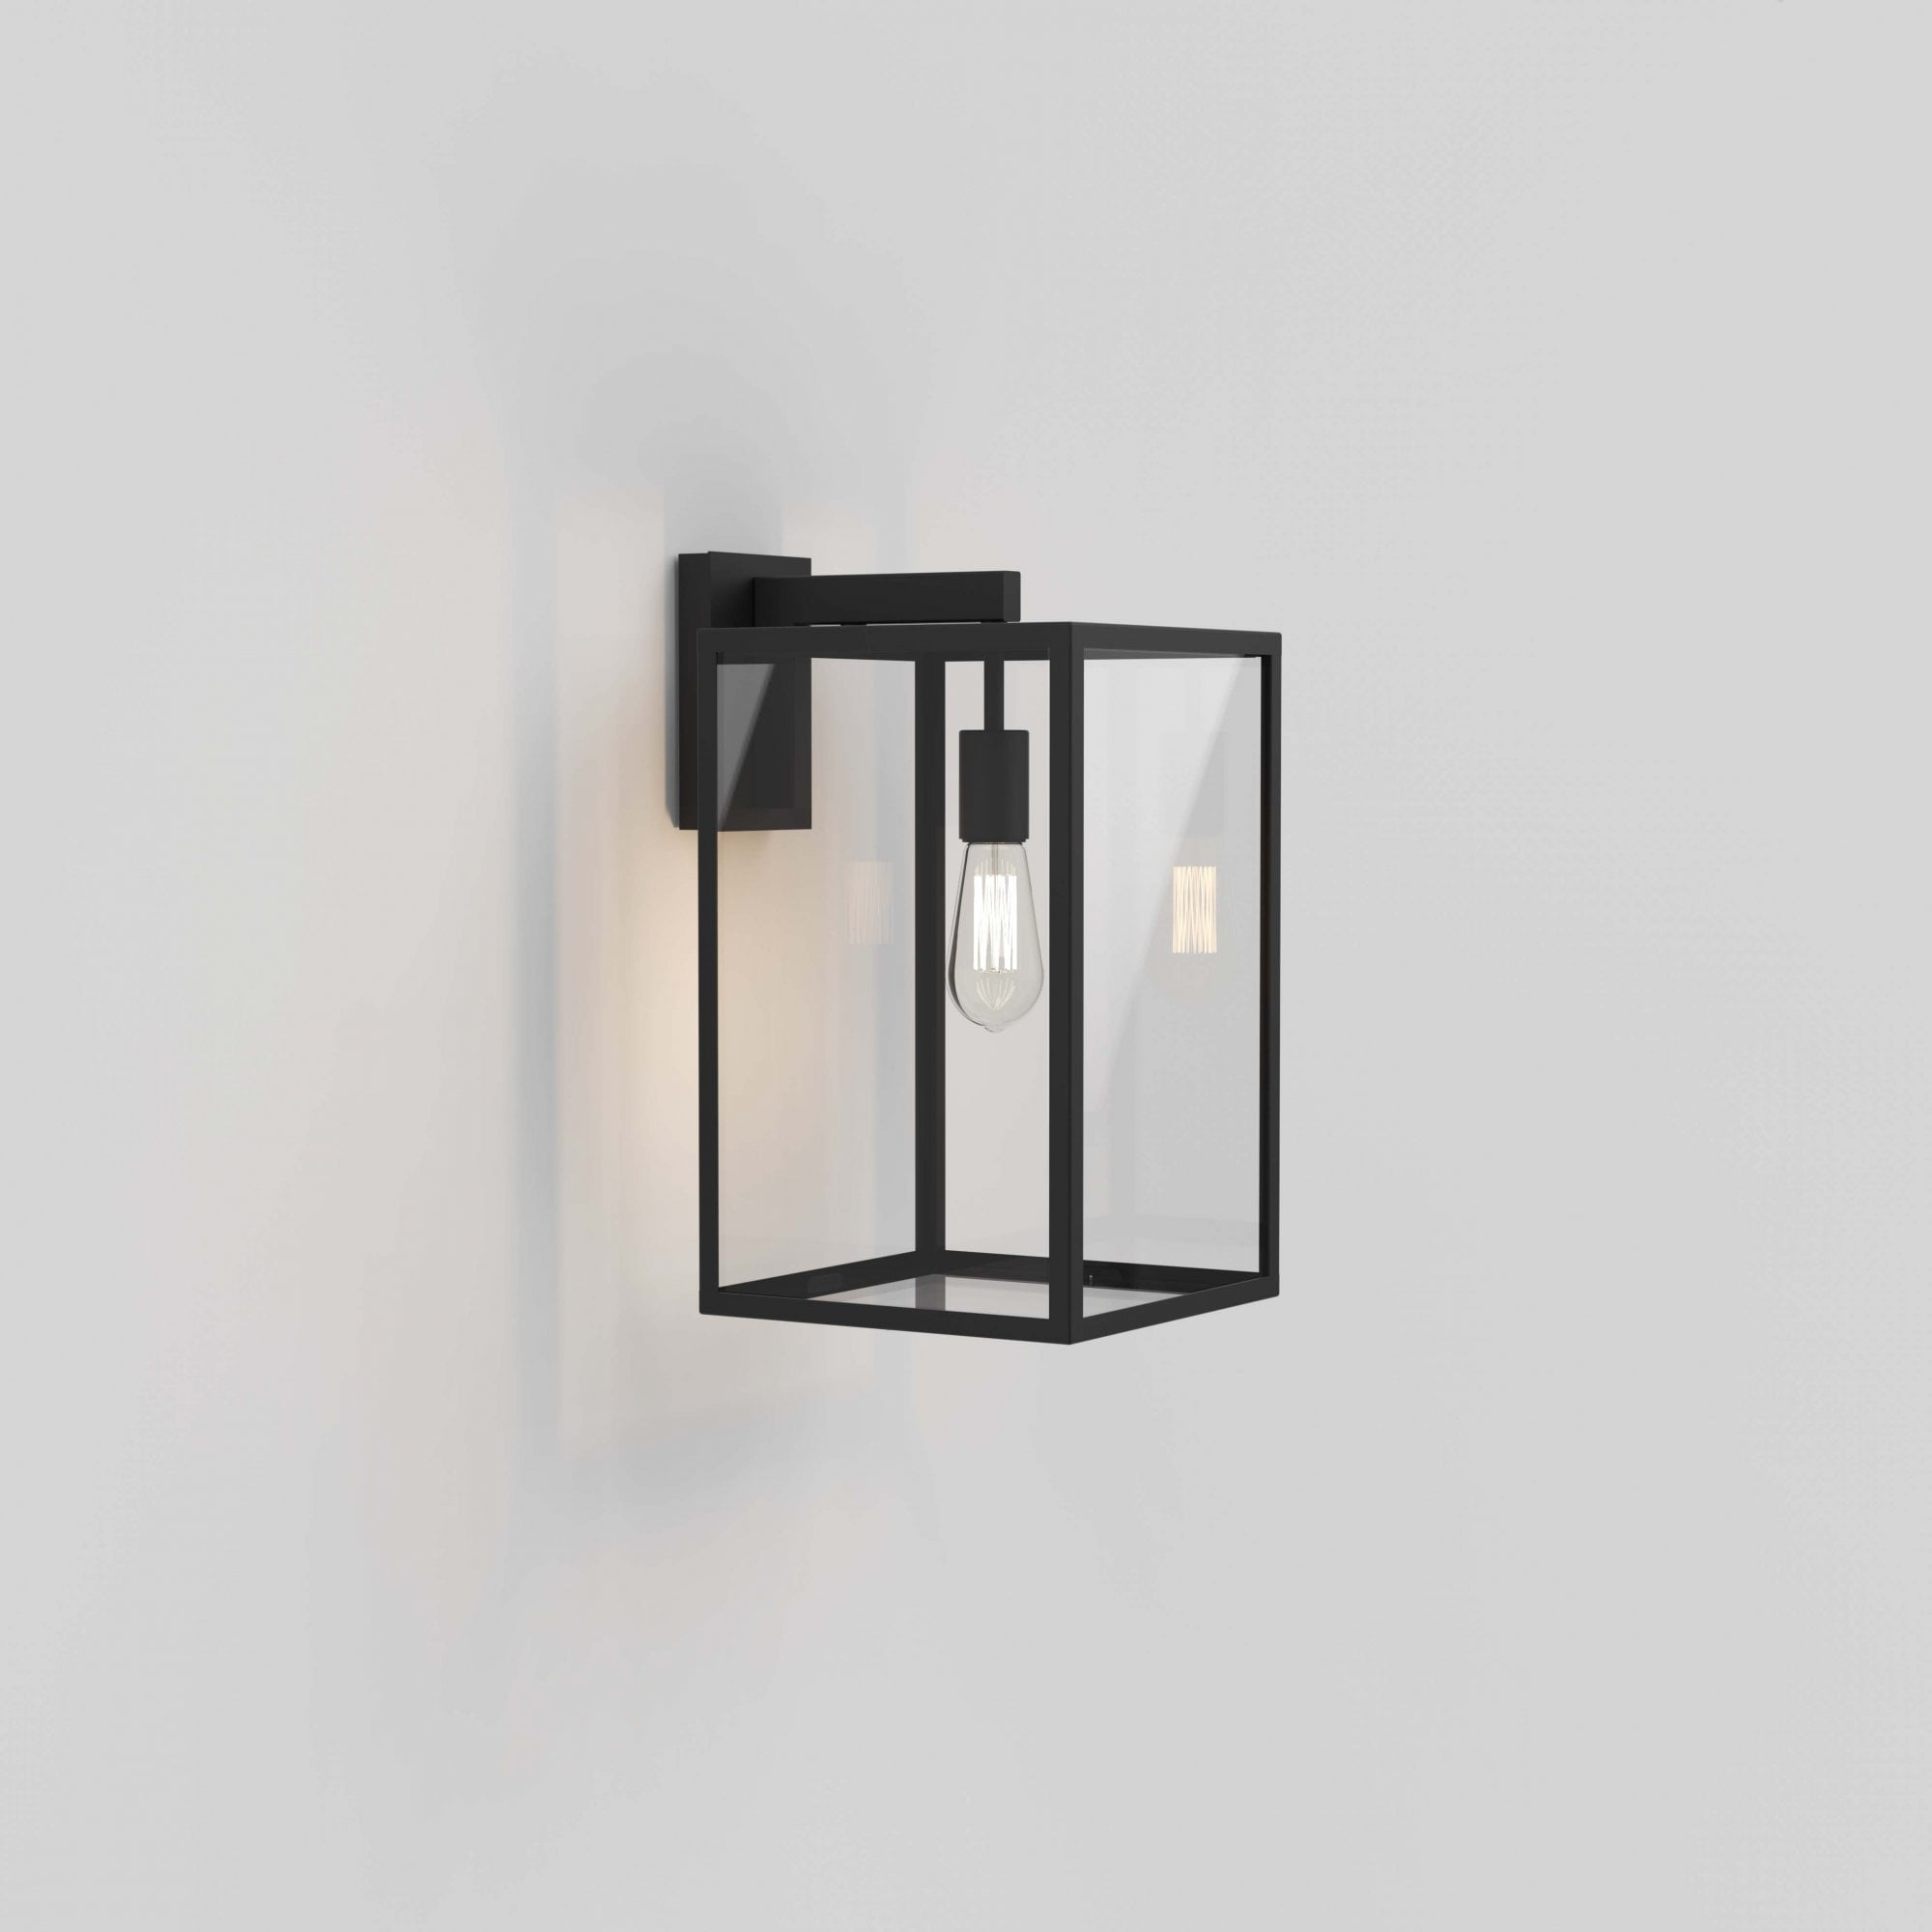 1354007 Box Lantern 450 Outdoor Wall Light Textured Black